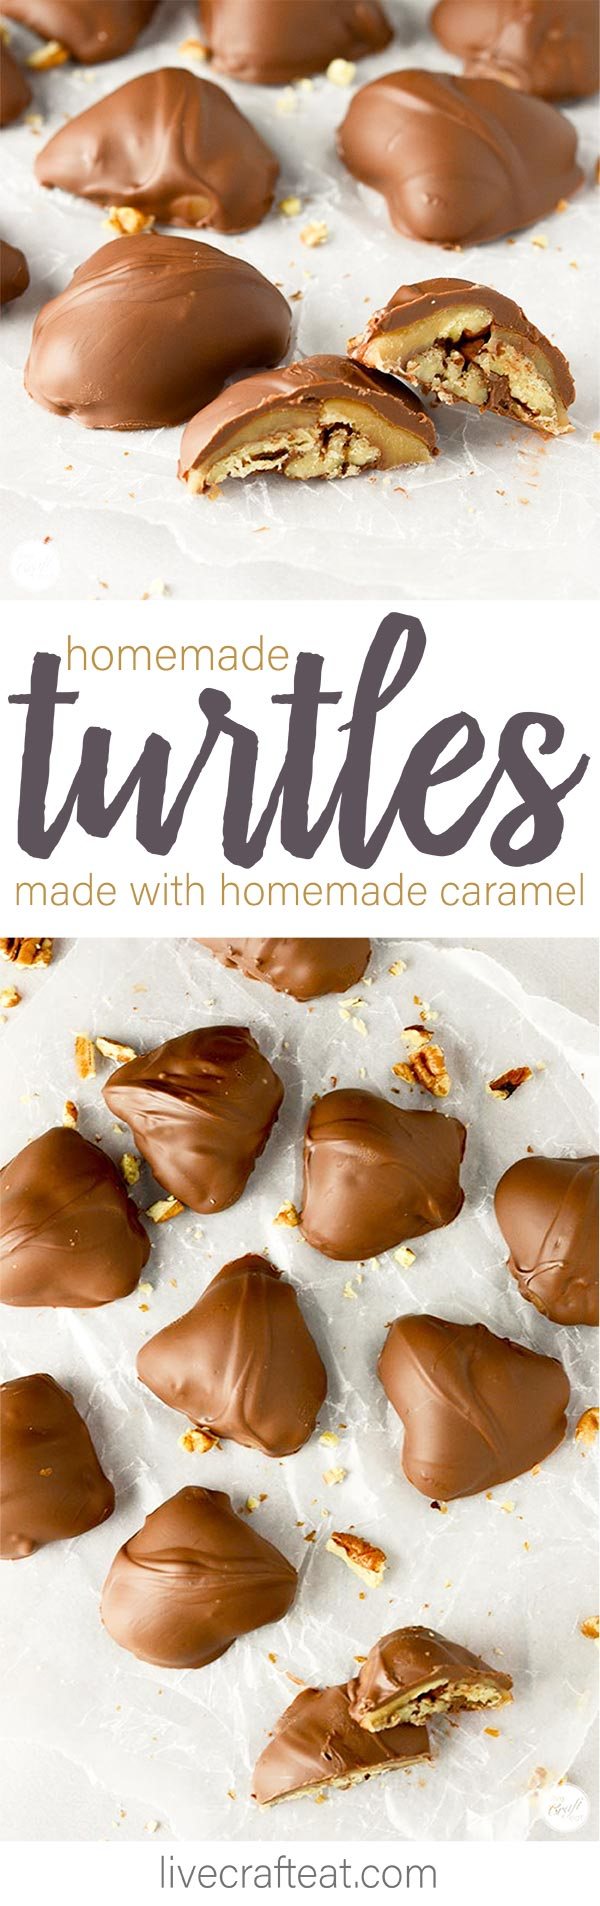 homemade turtles made with east homemade soft caramel